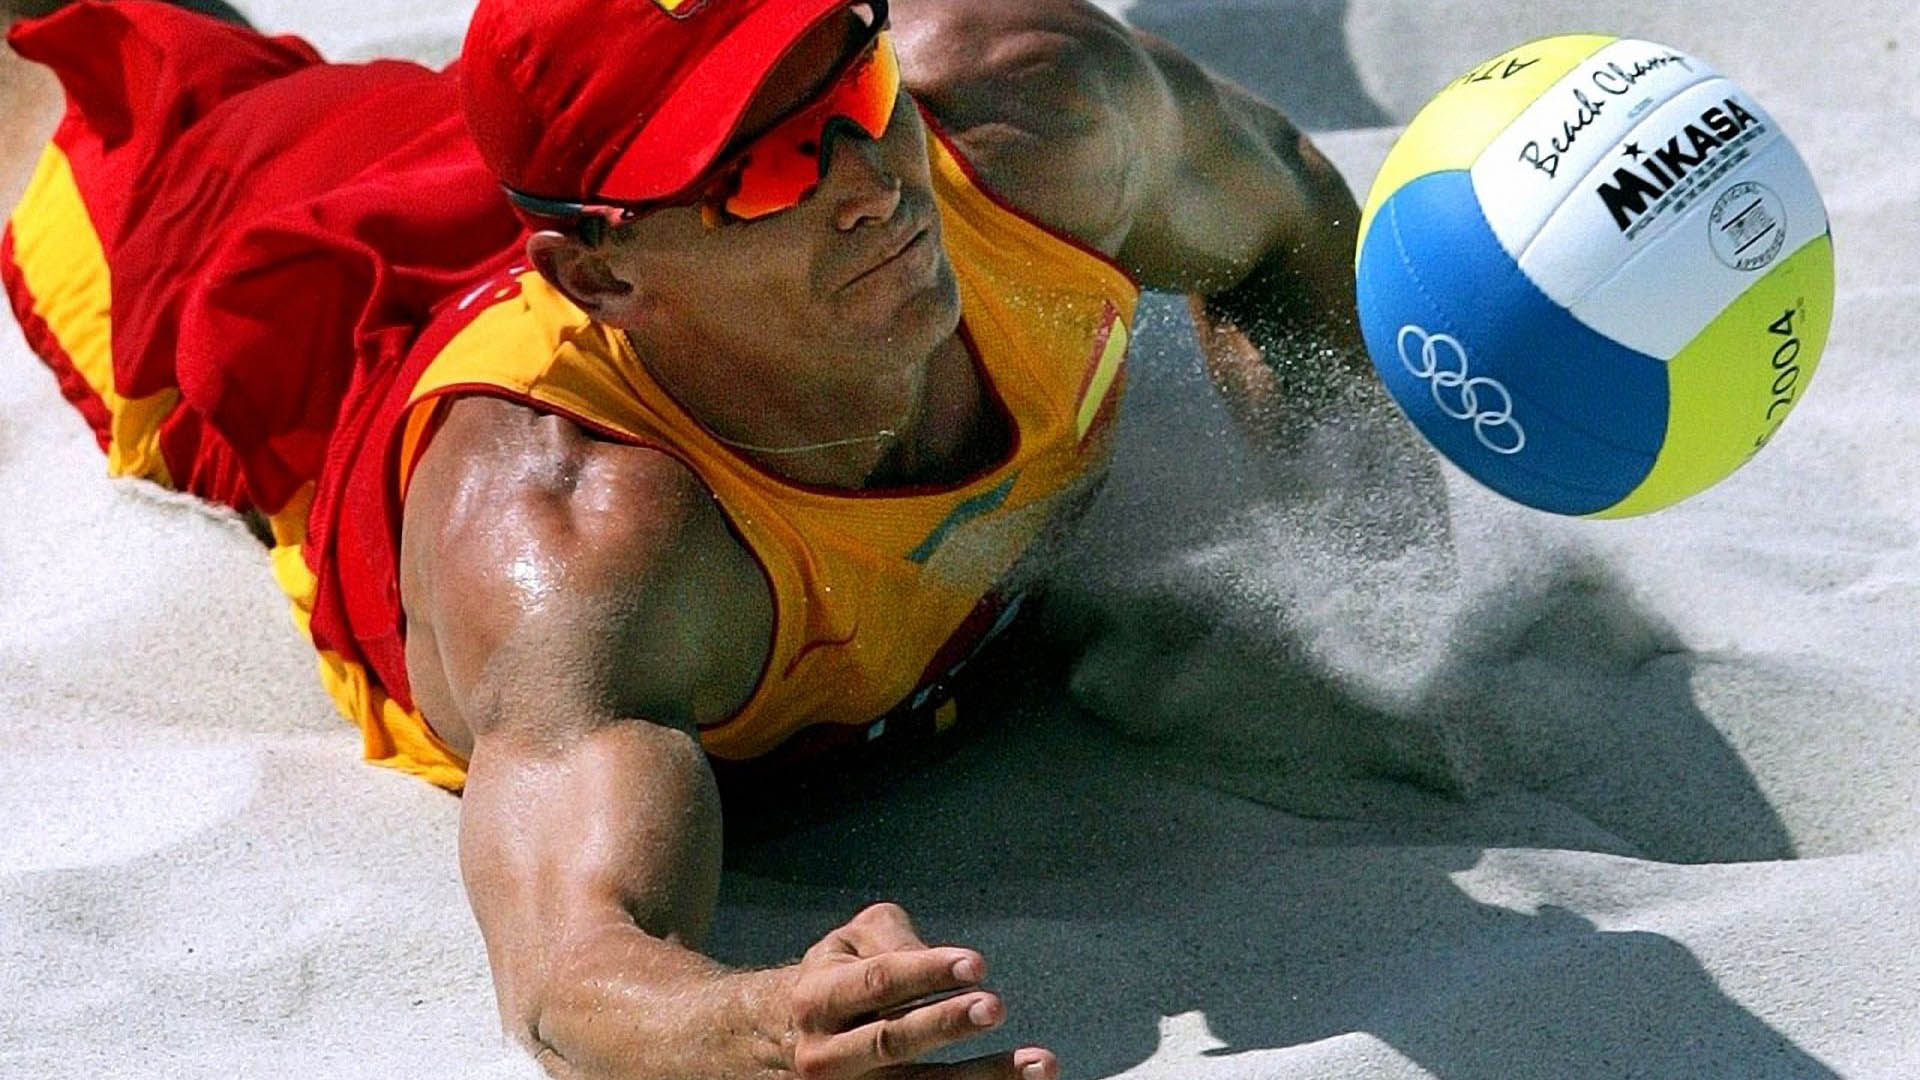 beach-volleyball-Beach-Volleyball-Photos-HD-Fan-Full-HD-1080p-wallpaper-wp3603054